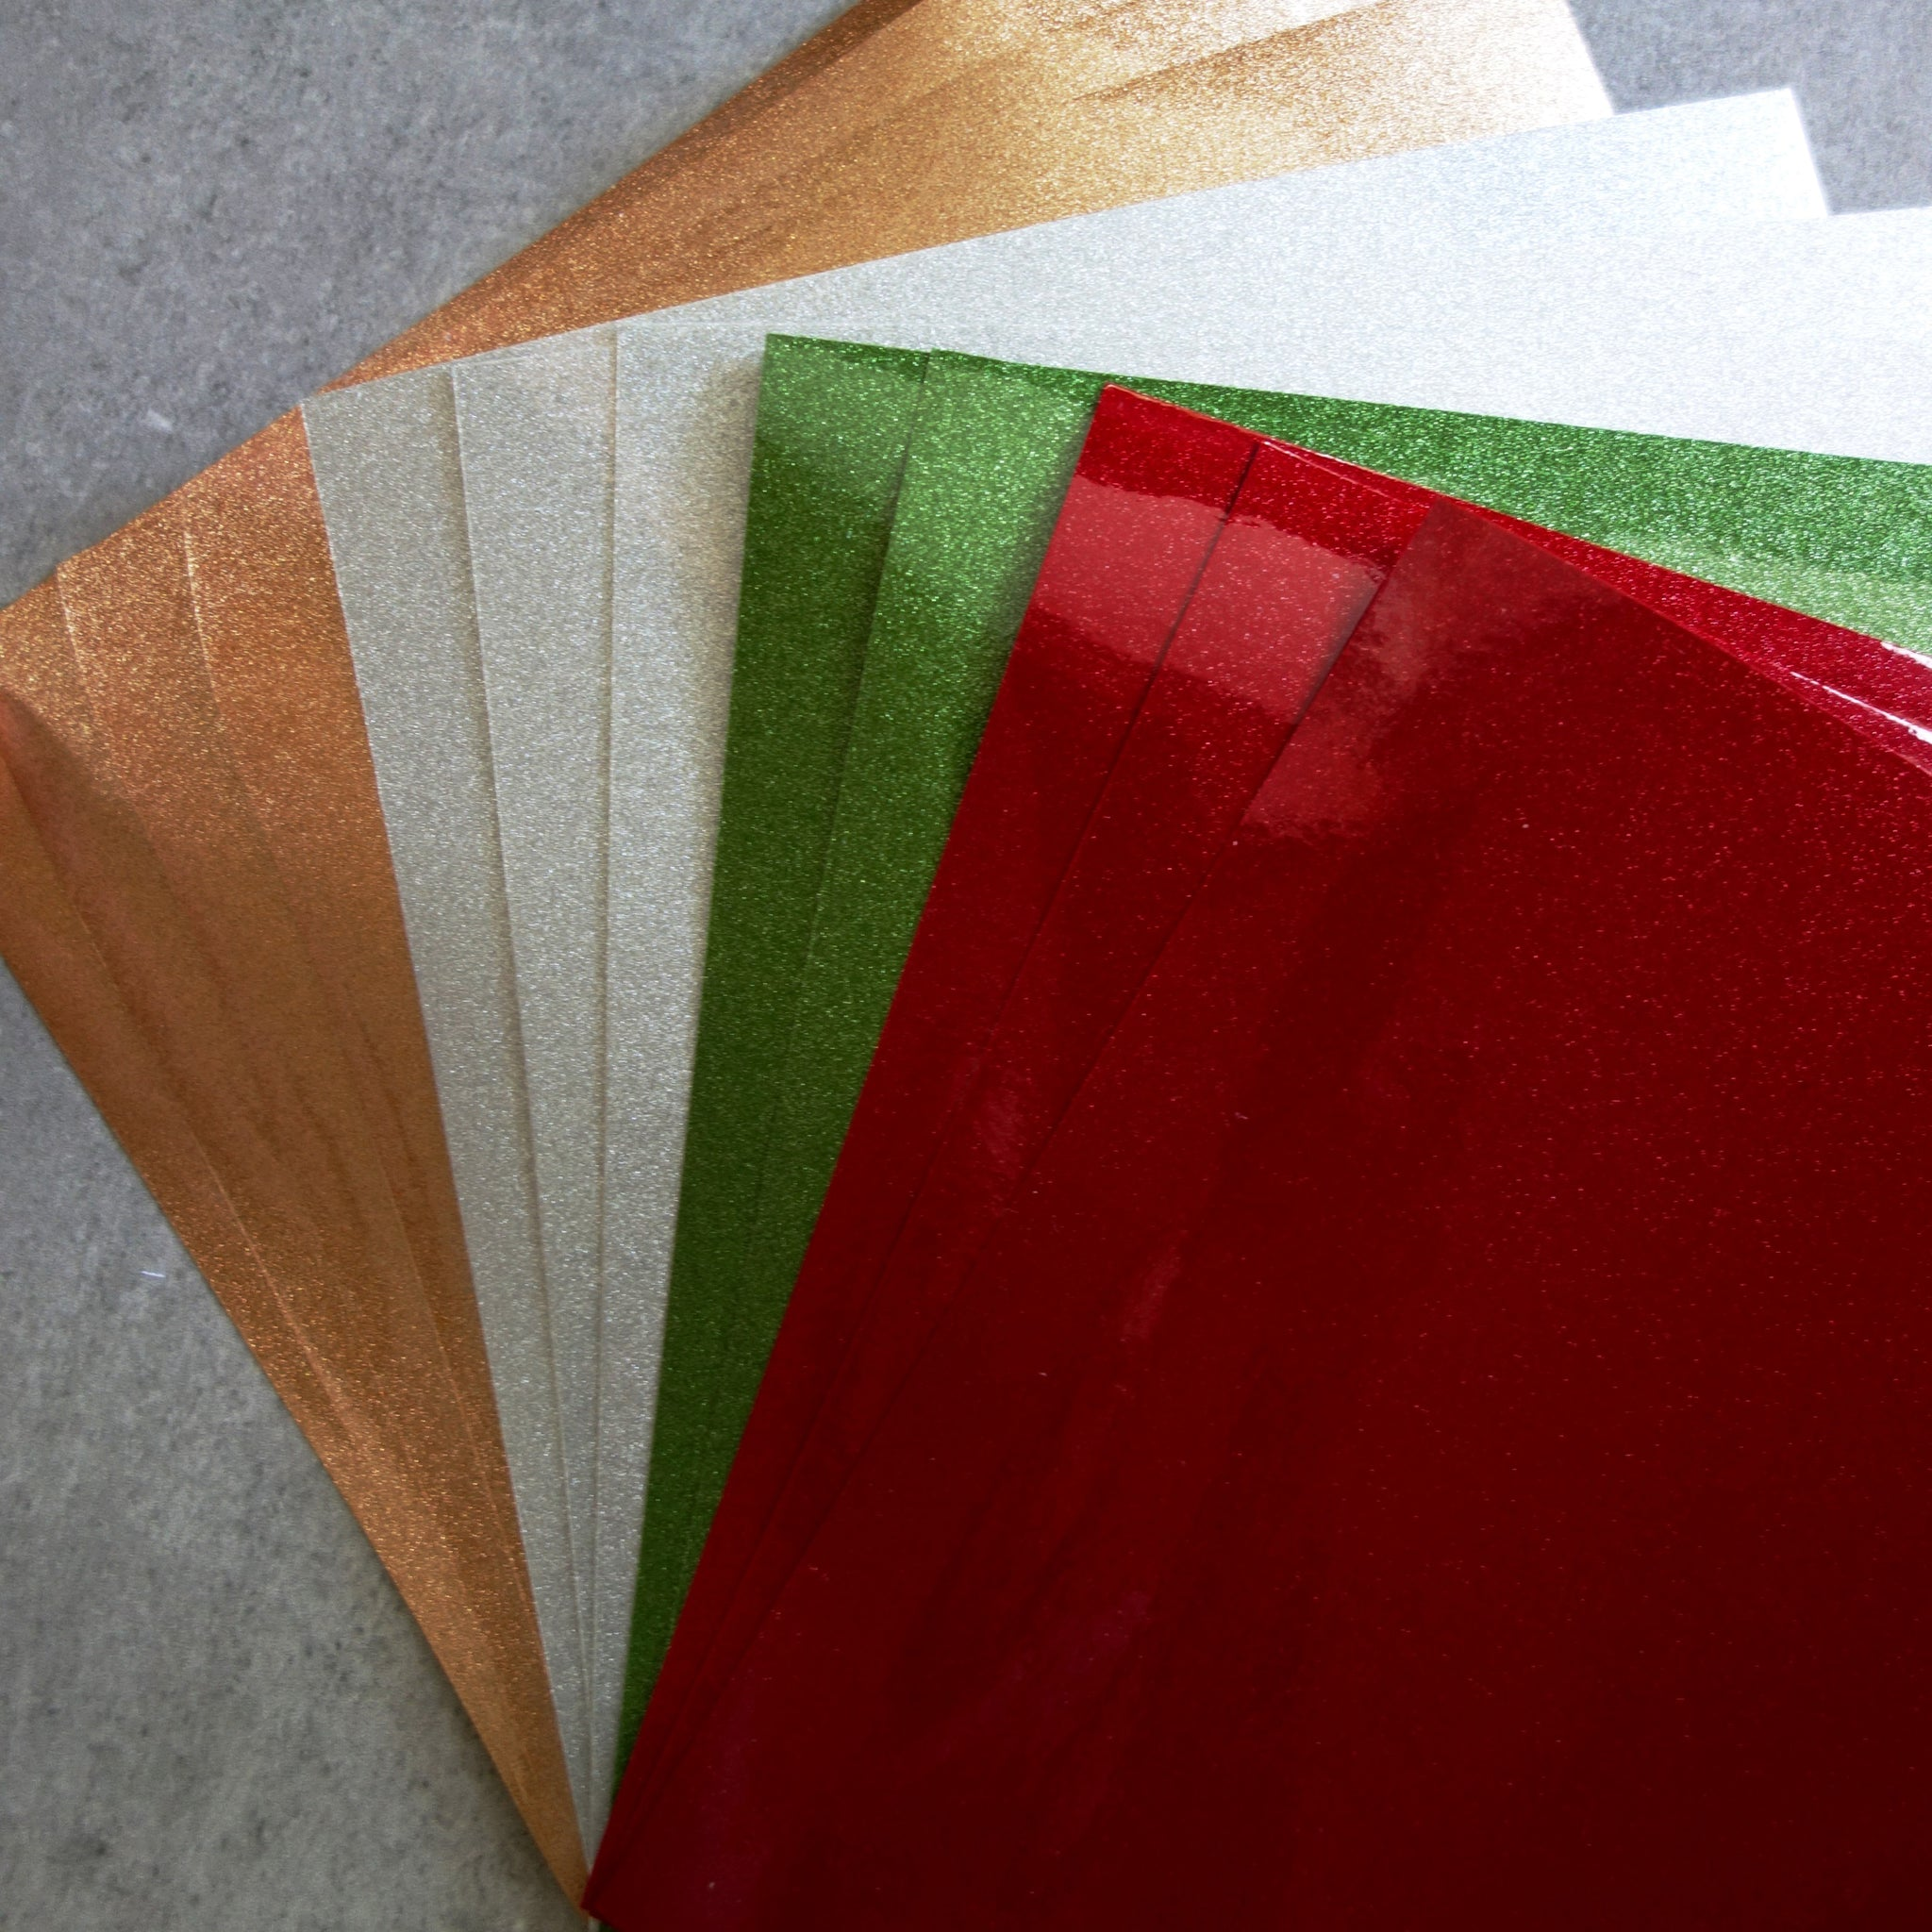 6x6 METALLIC SHIMMER PAPER CHRISTMAS MIX RED GREEN SILVER OLD GOLD 150GSM 12 SHTS CARDMAKING